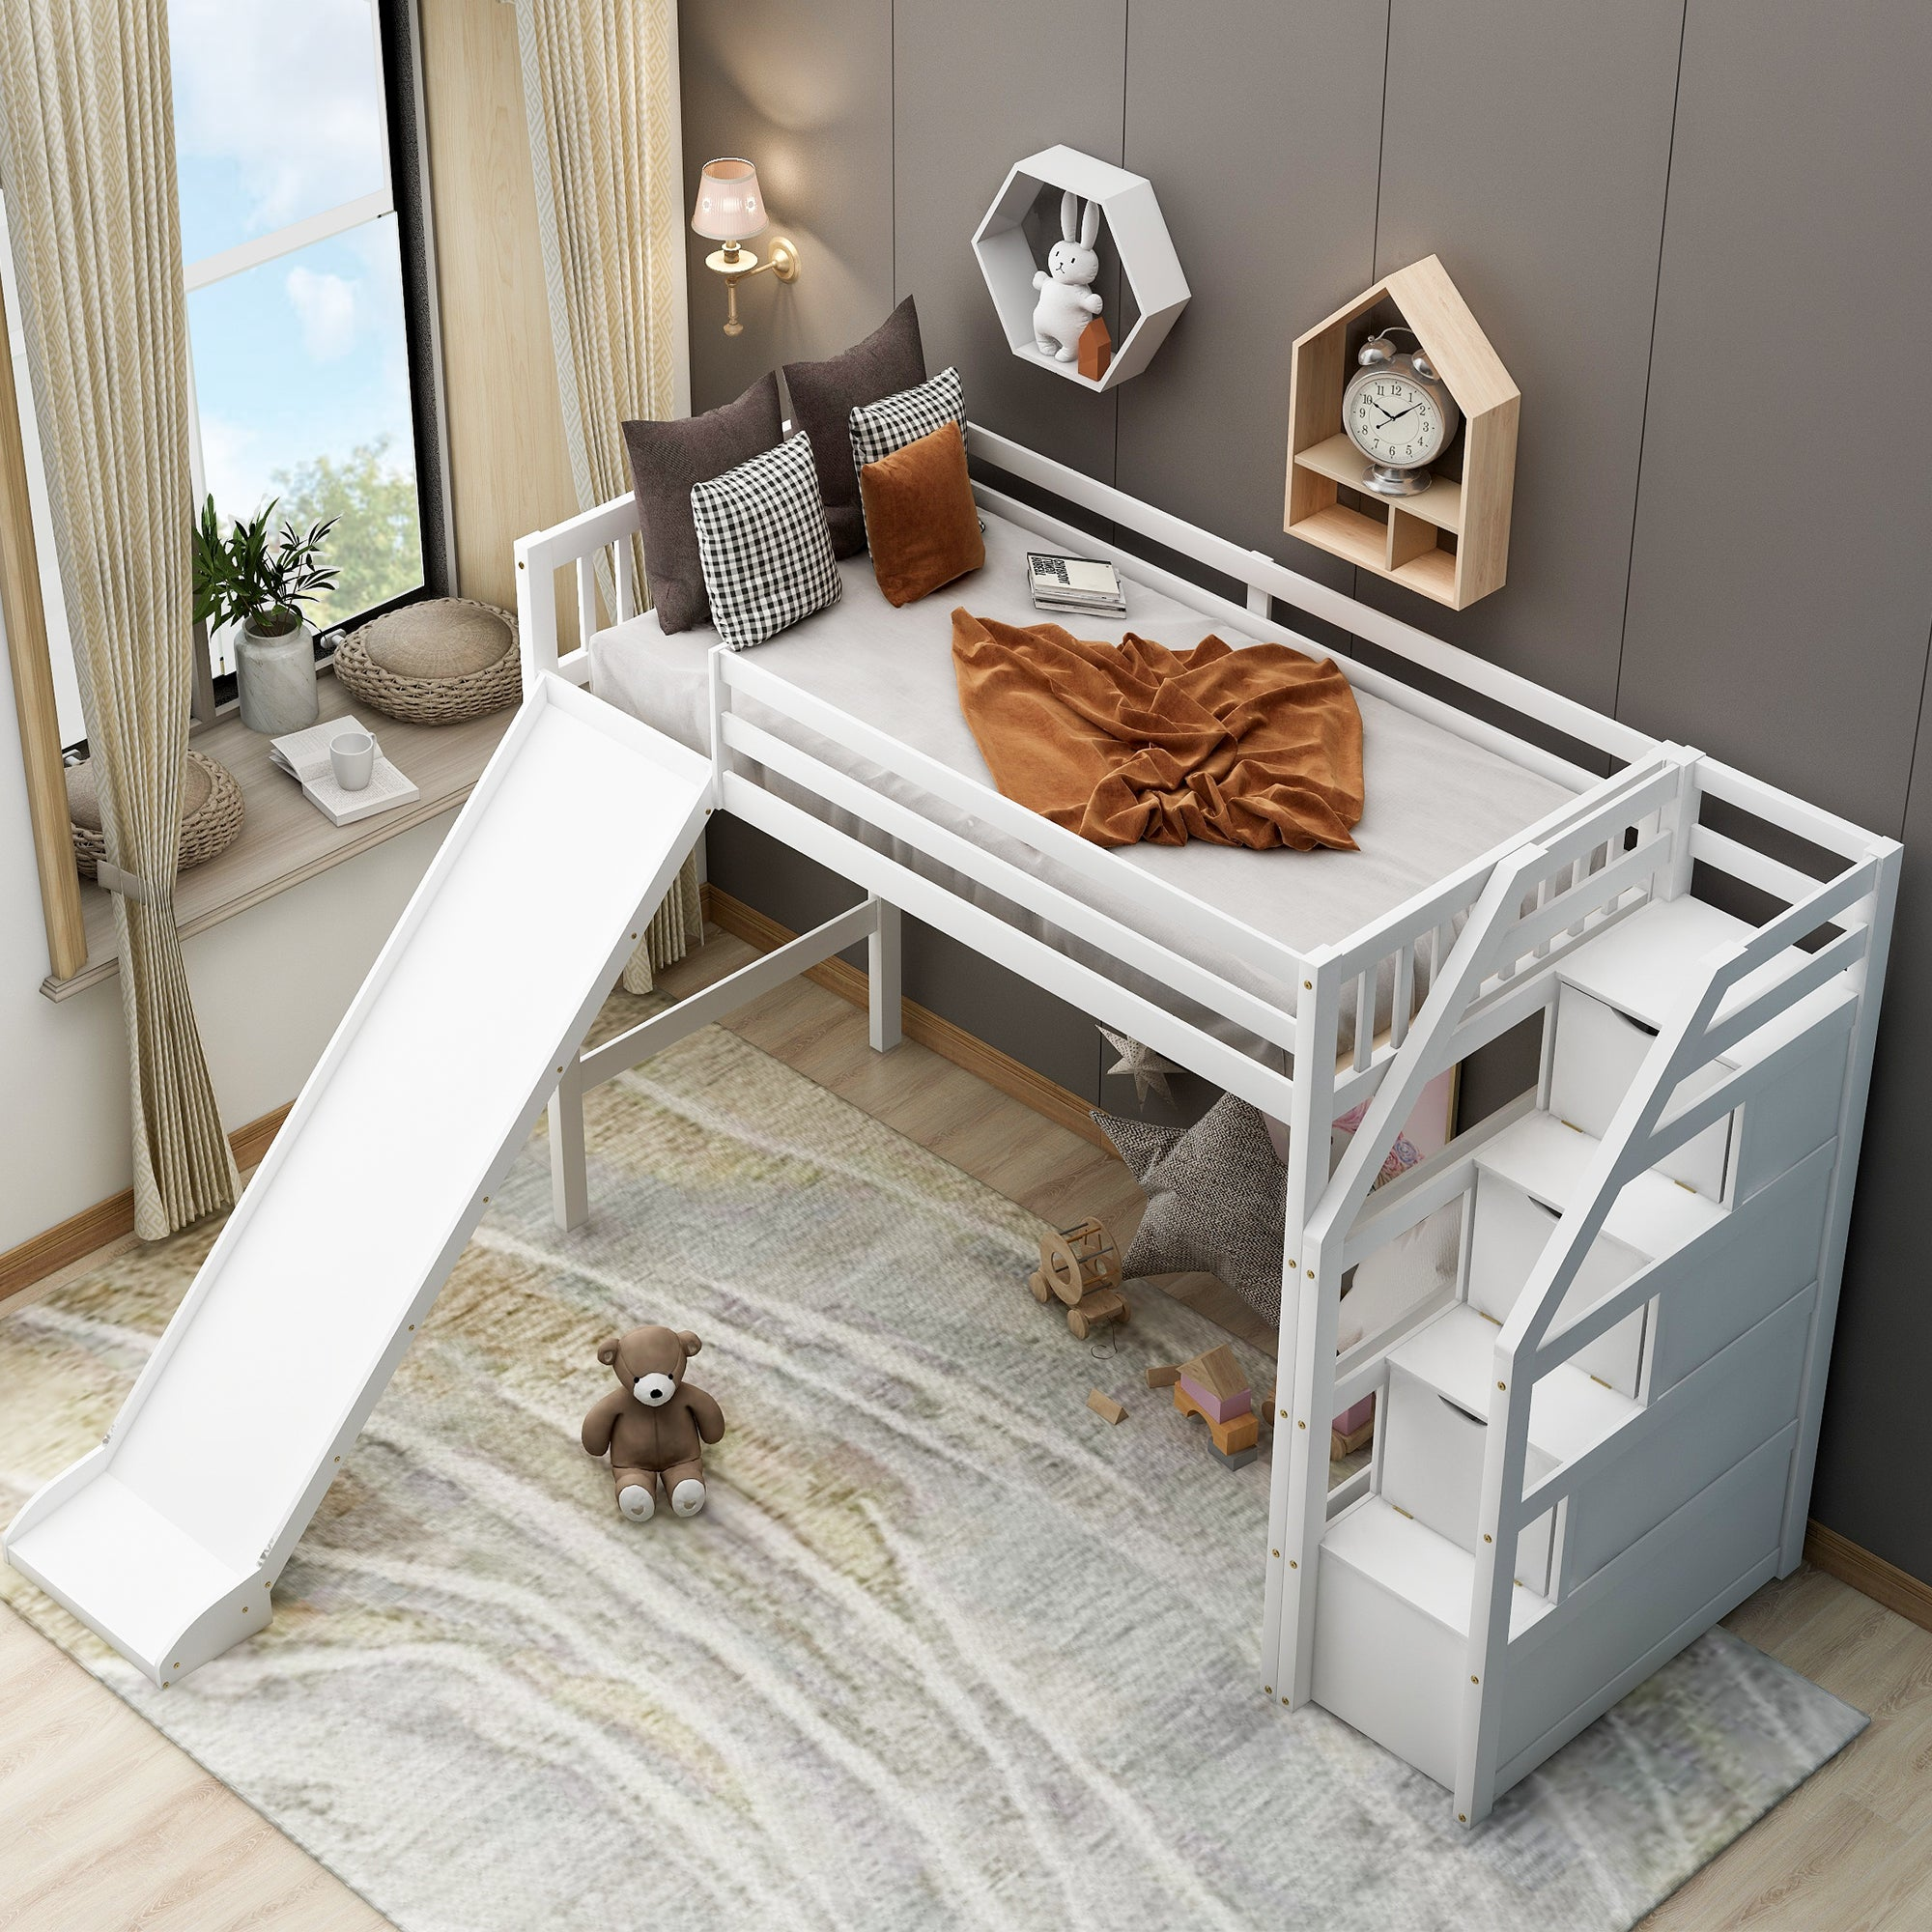 Twin Size Loft Bed With 4 Drawers For Kids Bedroom